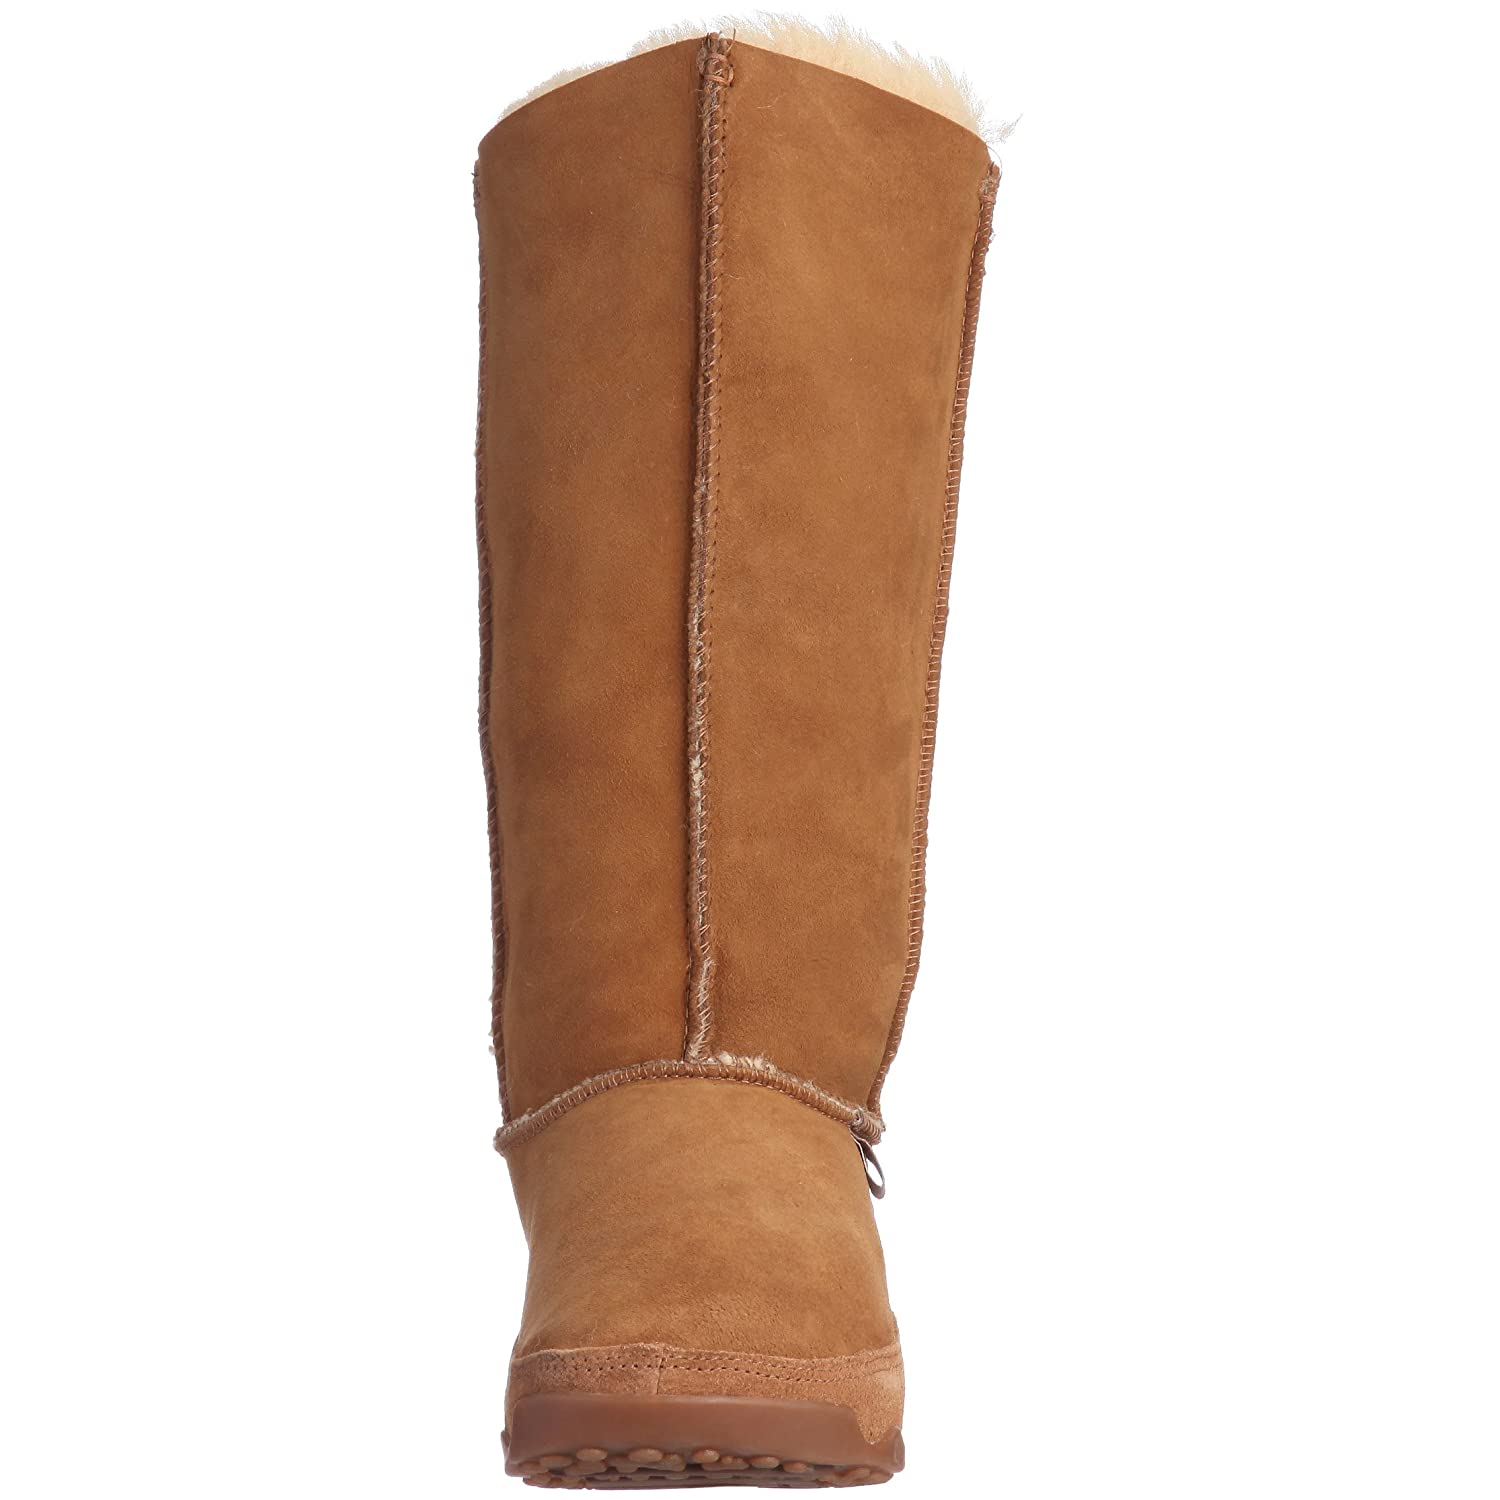 b4a81bf5fd042b FitFlop - Mukluk Tall womens boot - Chestnut size 4 uk  Amazon.co.uk  Shoes    Bags